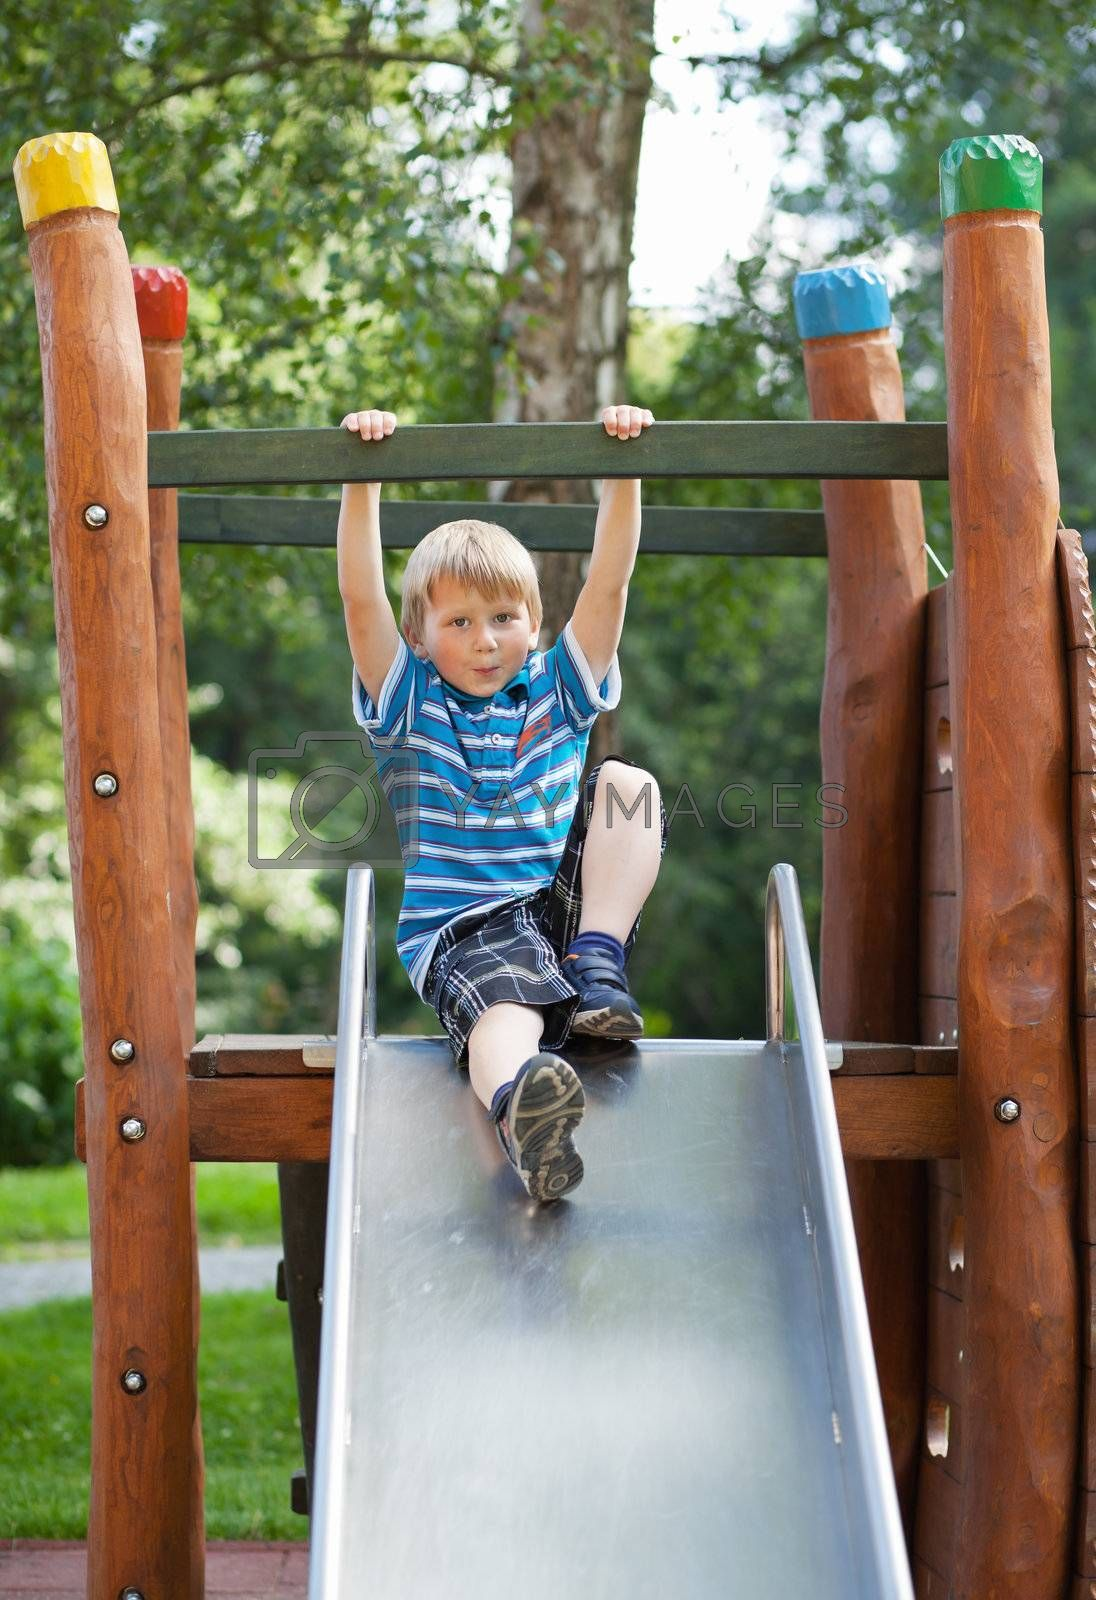 Little blond boy on an outdoor playground